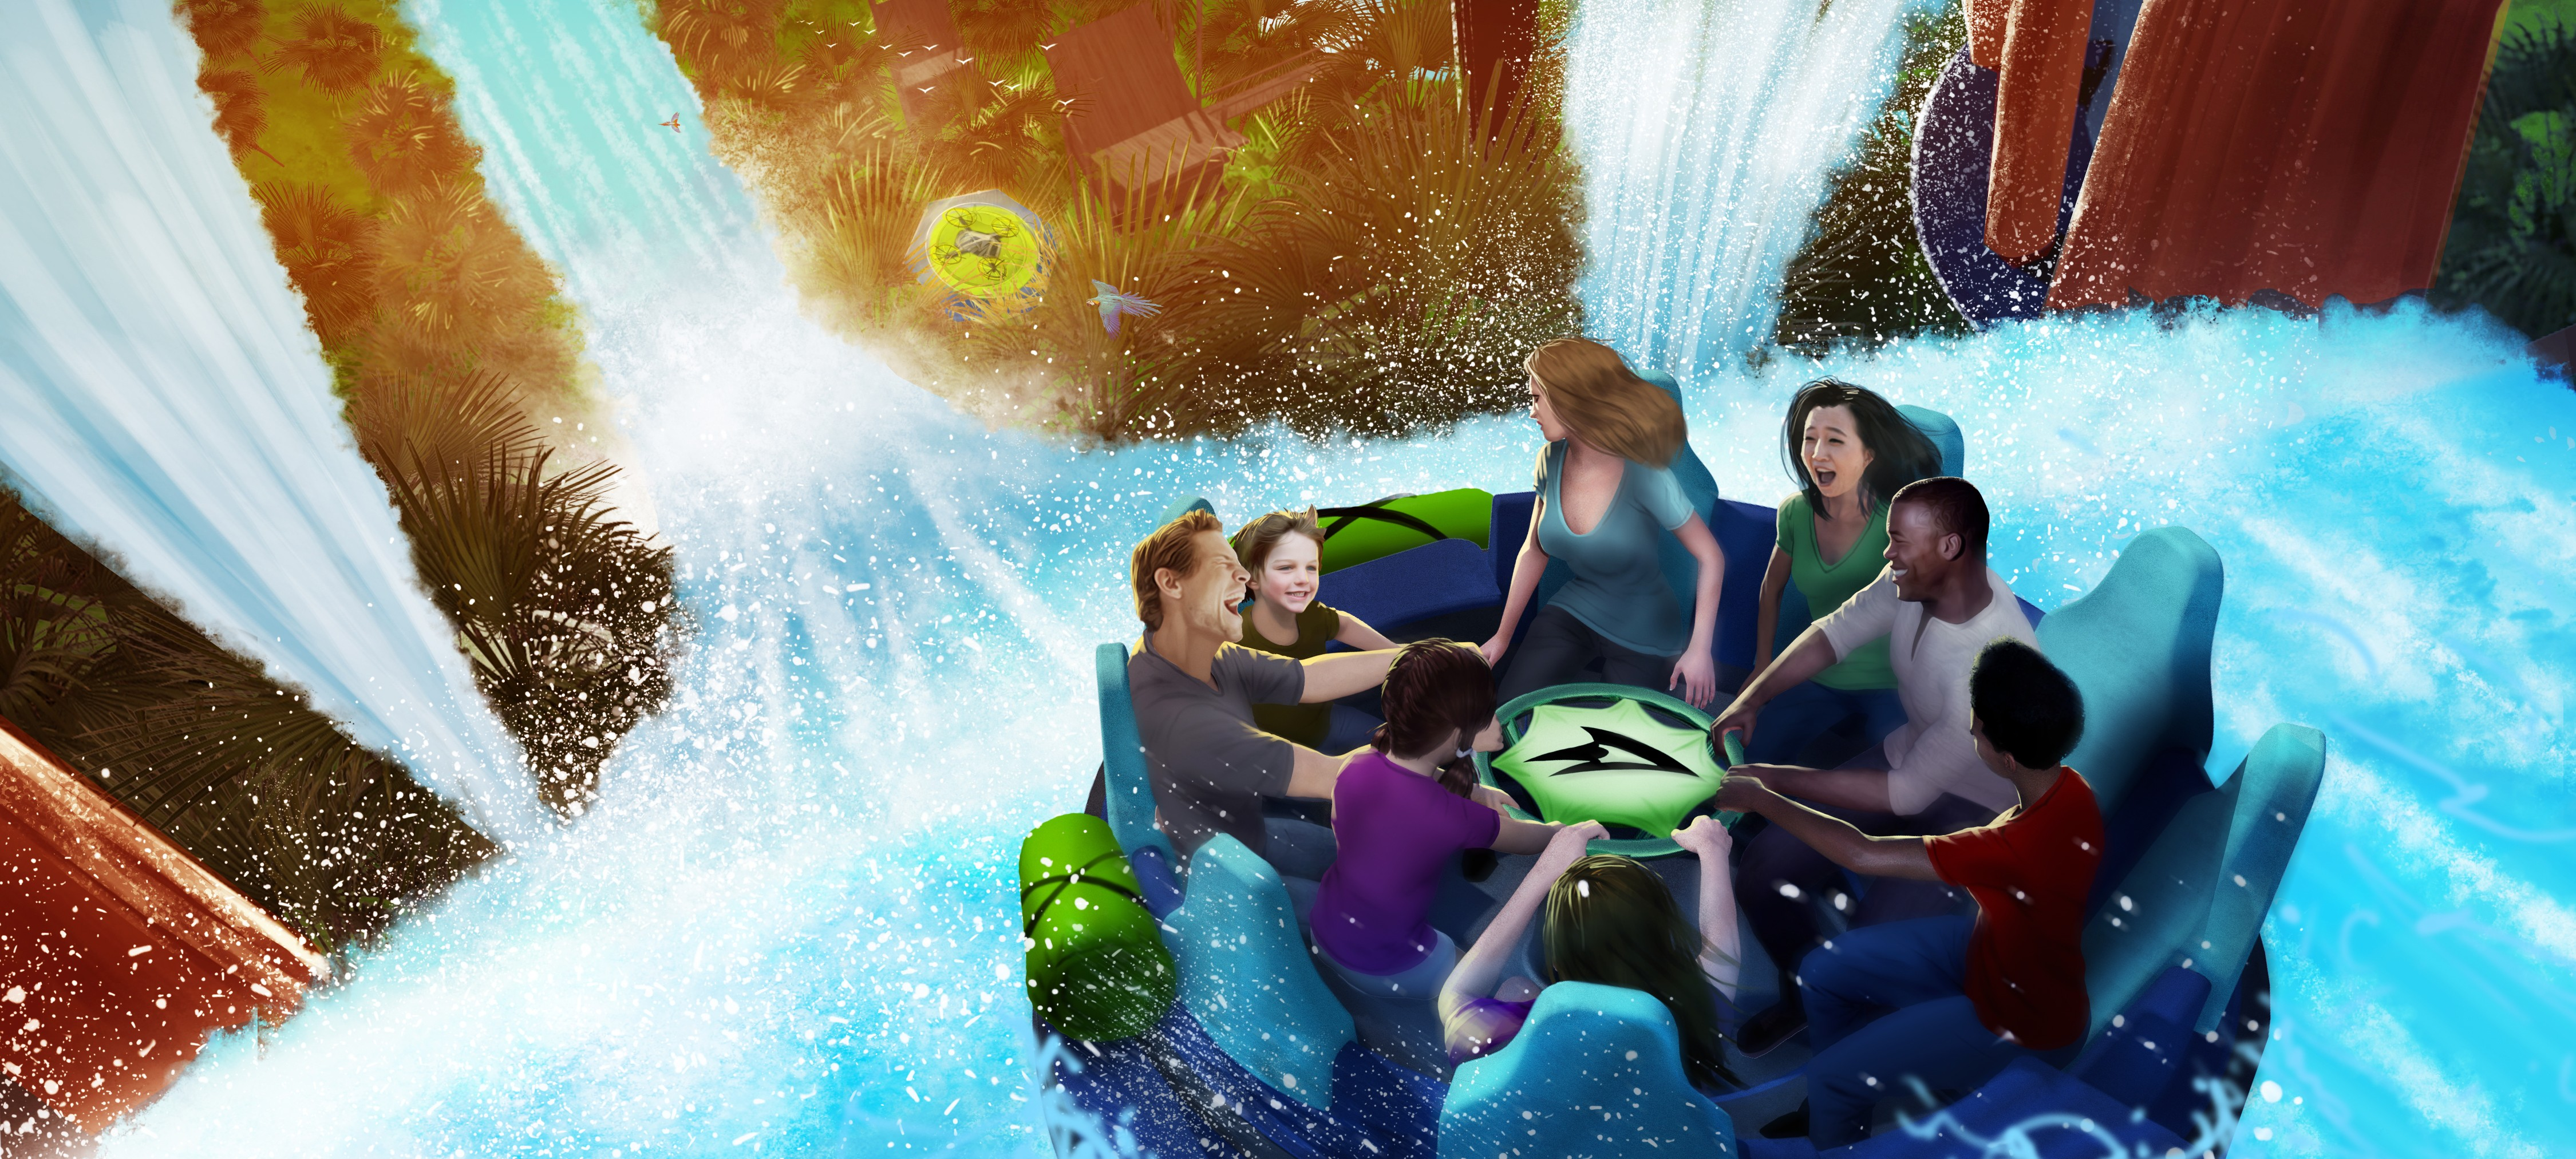 Seaworld Goes All In With New High Tech Raft Ride But Will